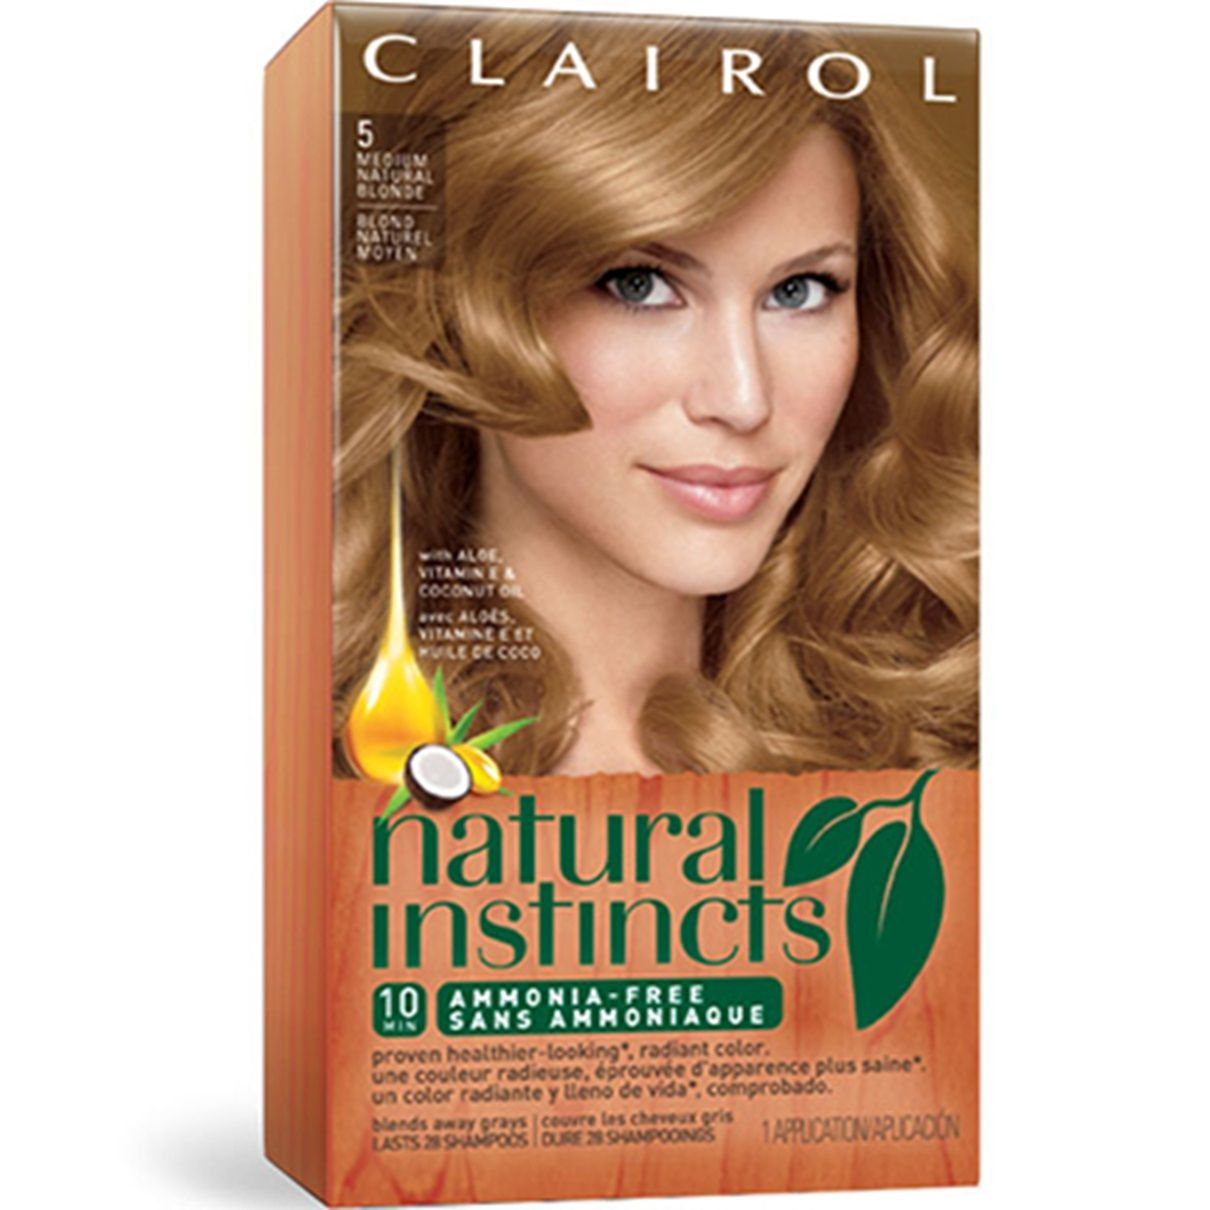 Natural Instincts Hair Color Clairol Natural Instincts With